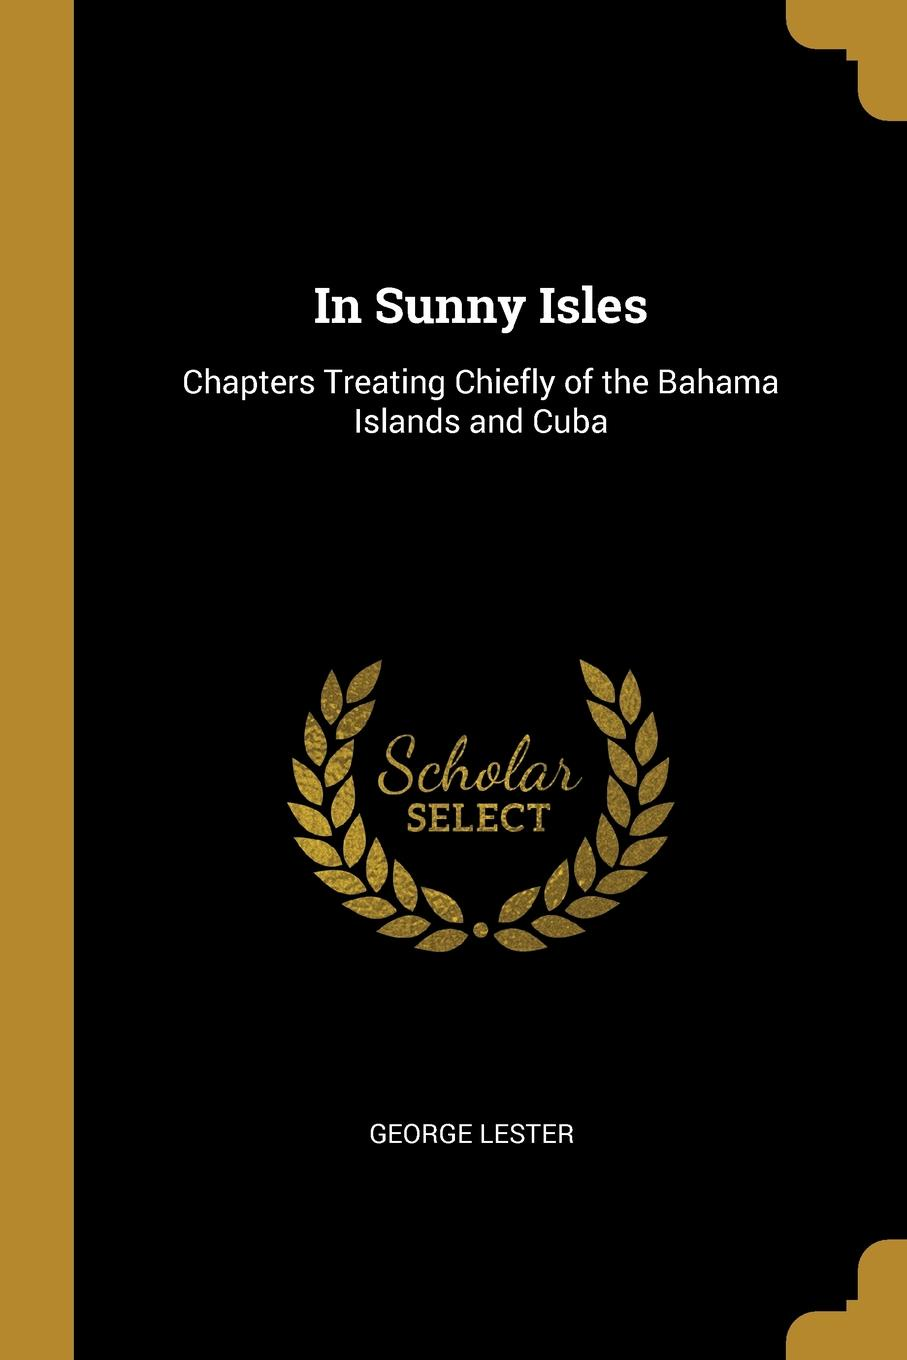 In Sunny Isles. Chapters Treating Chiefly of the Bahama Islands and Cuba. George Lester